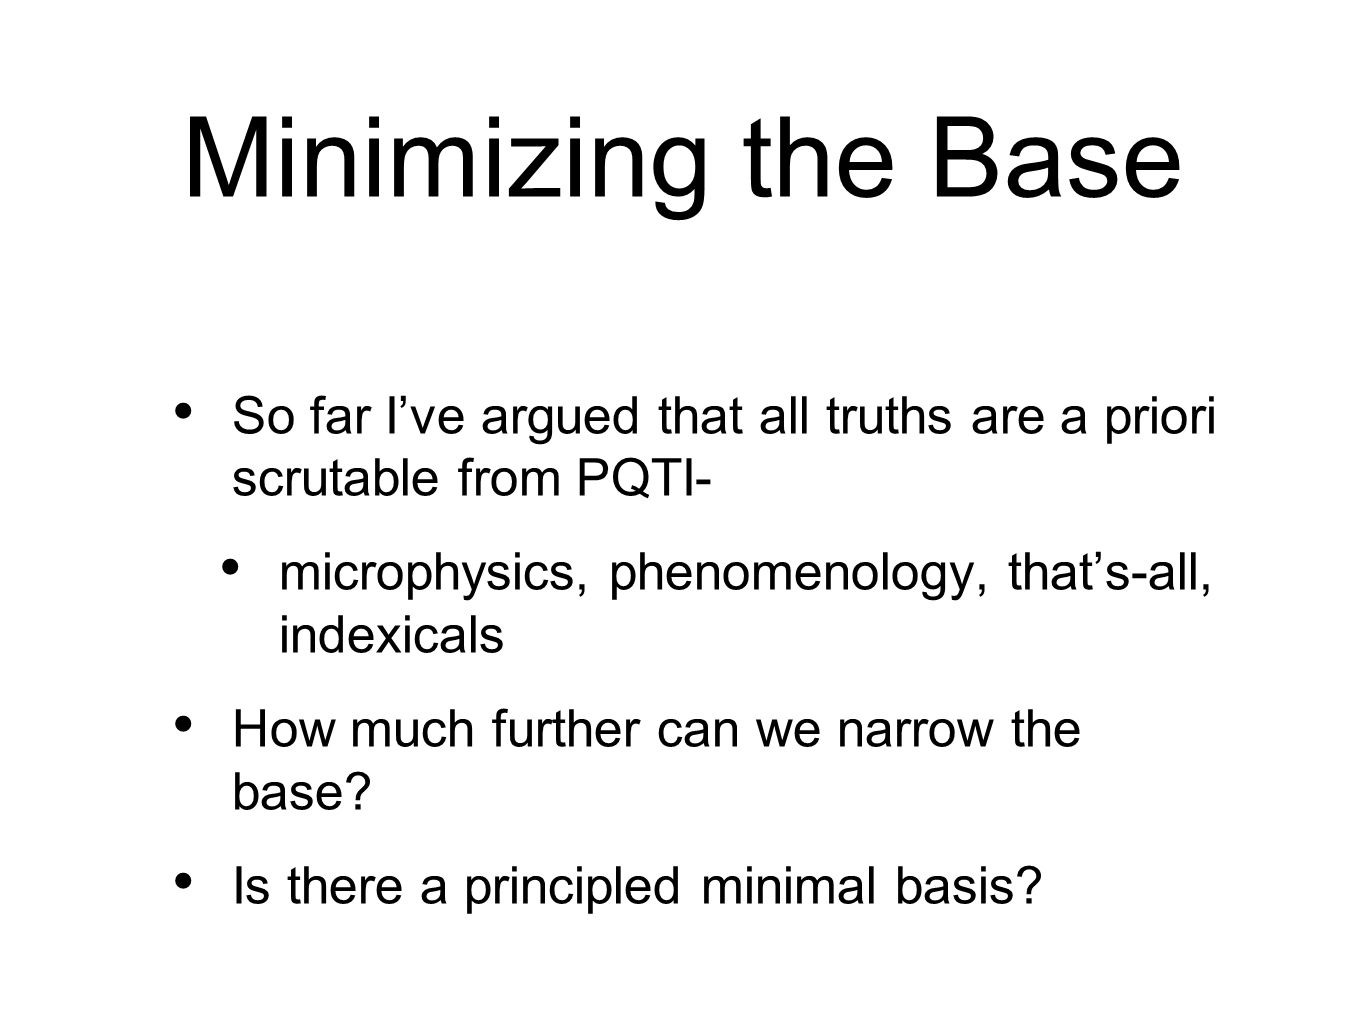 Minimizing the Base So far I've argued that all truths are a priori scrutable from PQTI- microphysics, phenomenology, that's-all, indexicals.